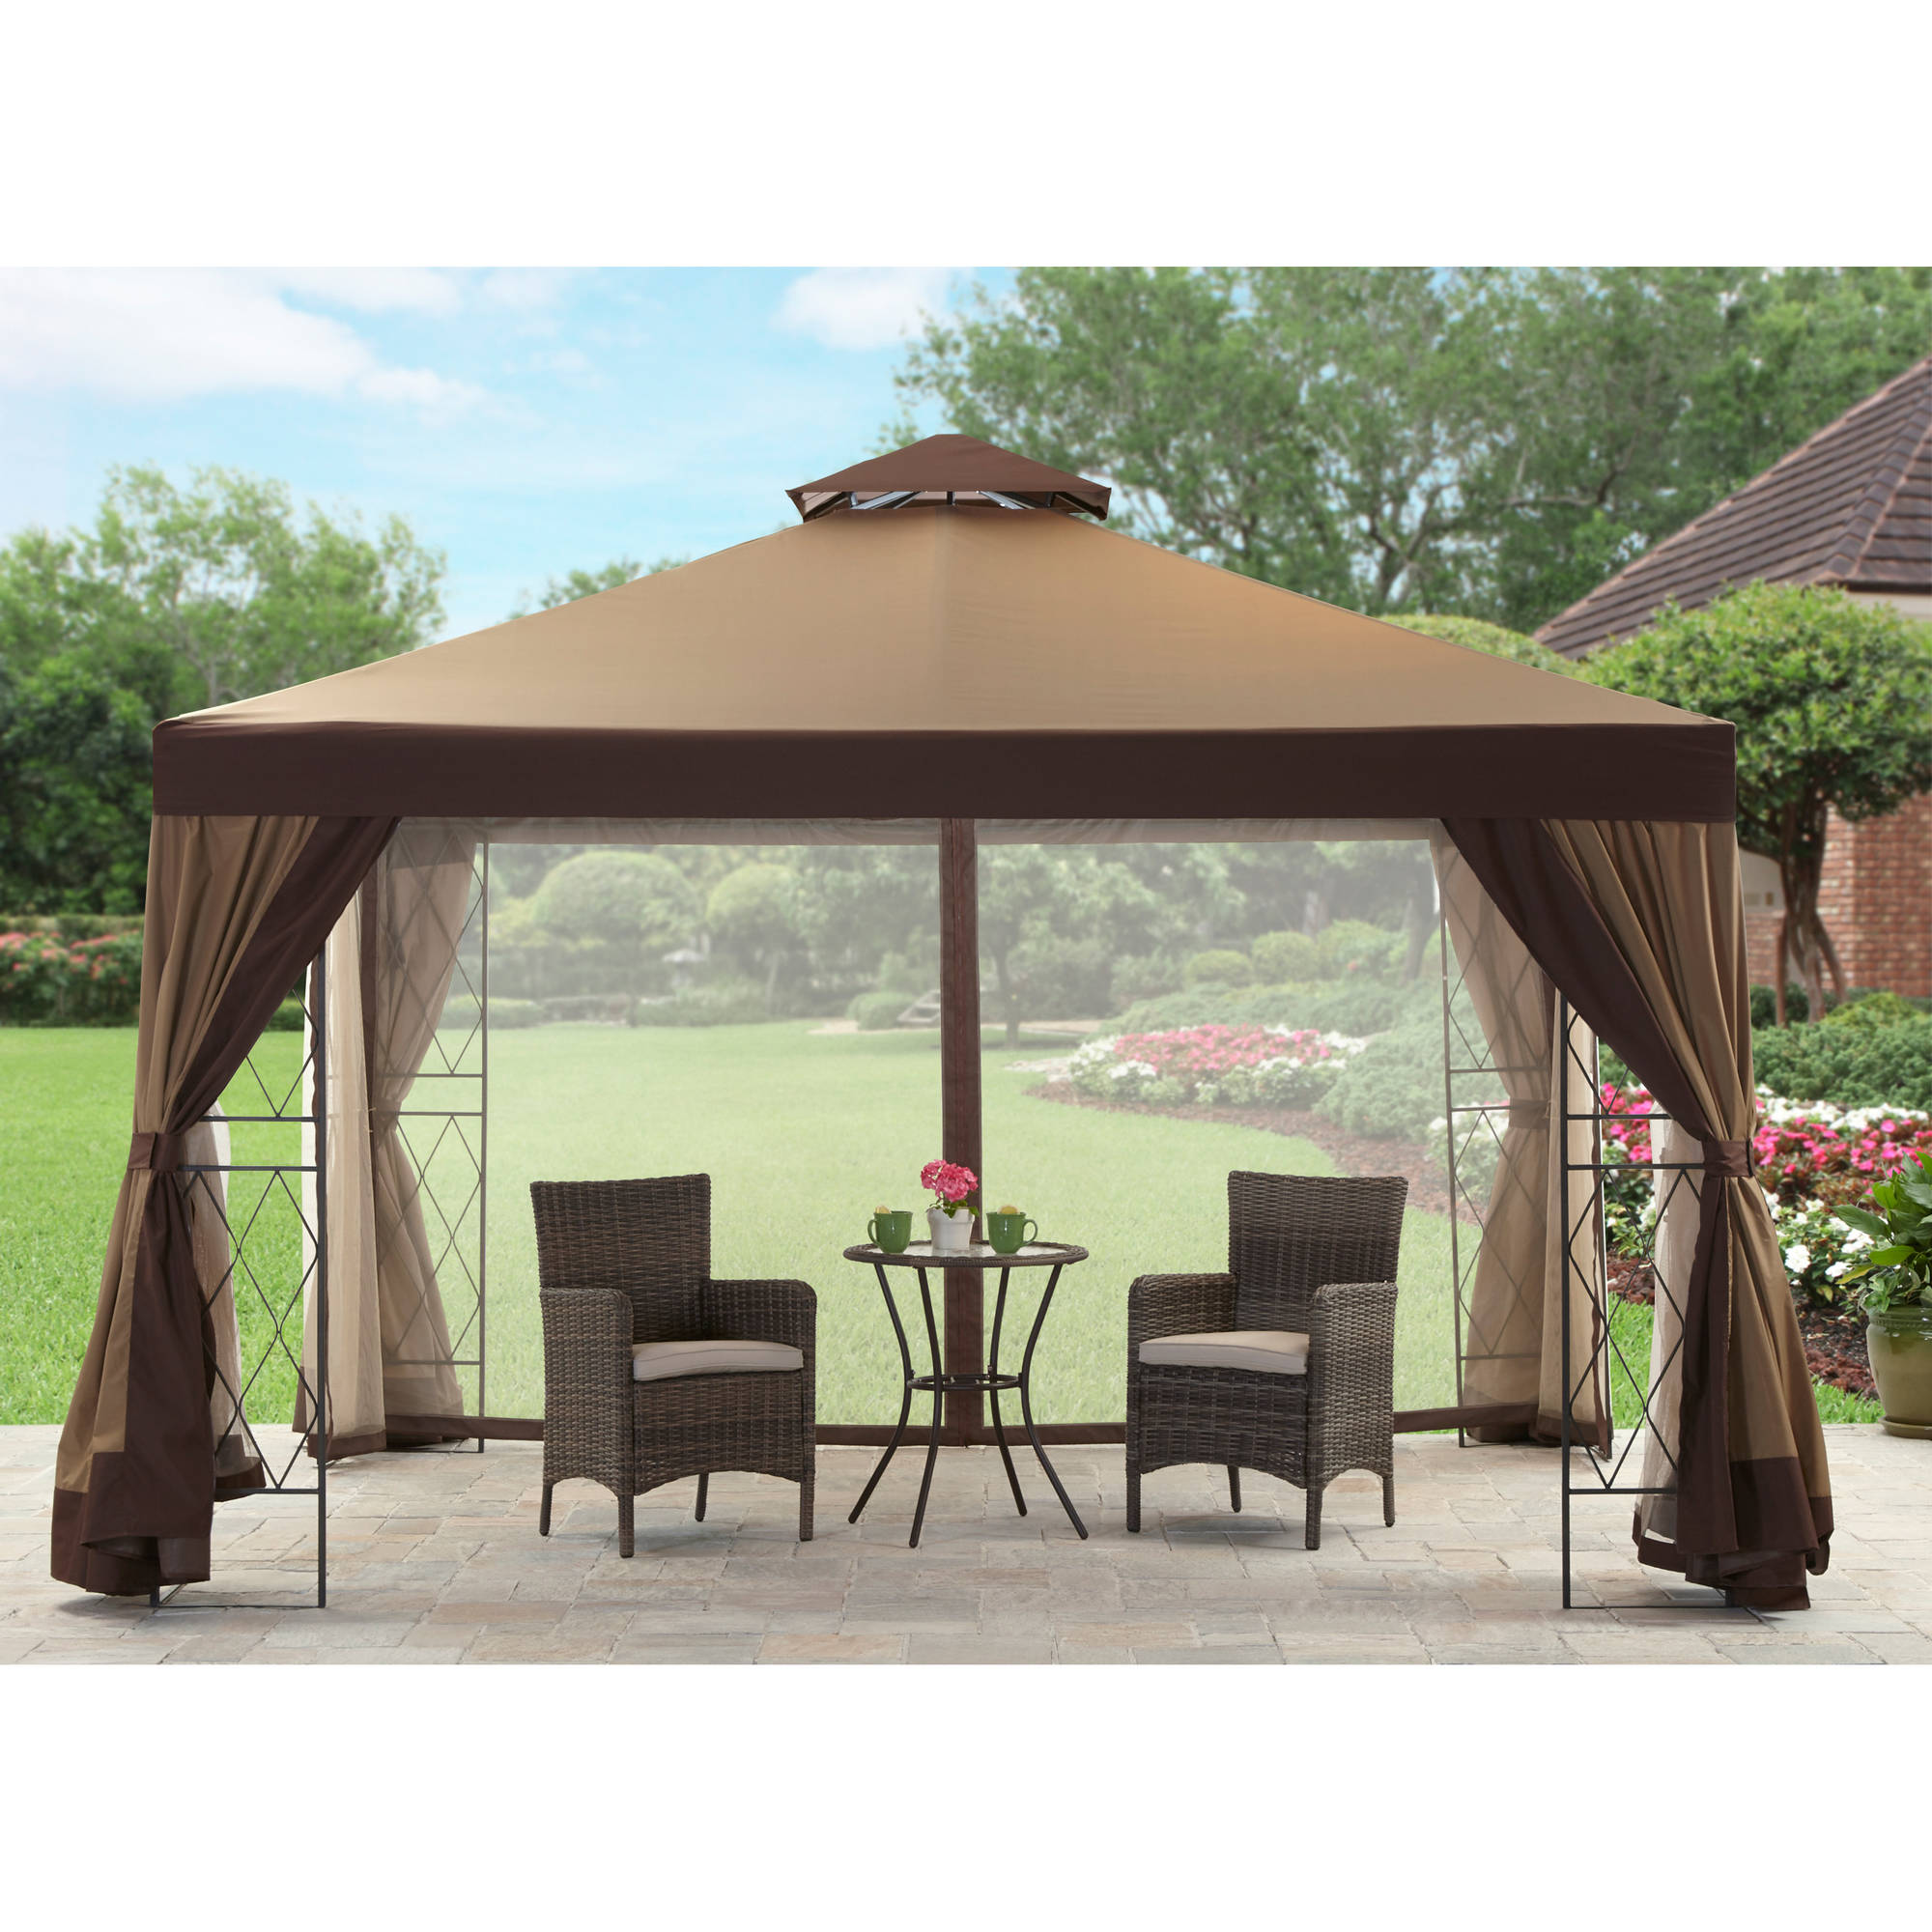 Better Homes & Gardens Kimber Valley Gazebo, 12' x 10' by